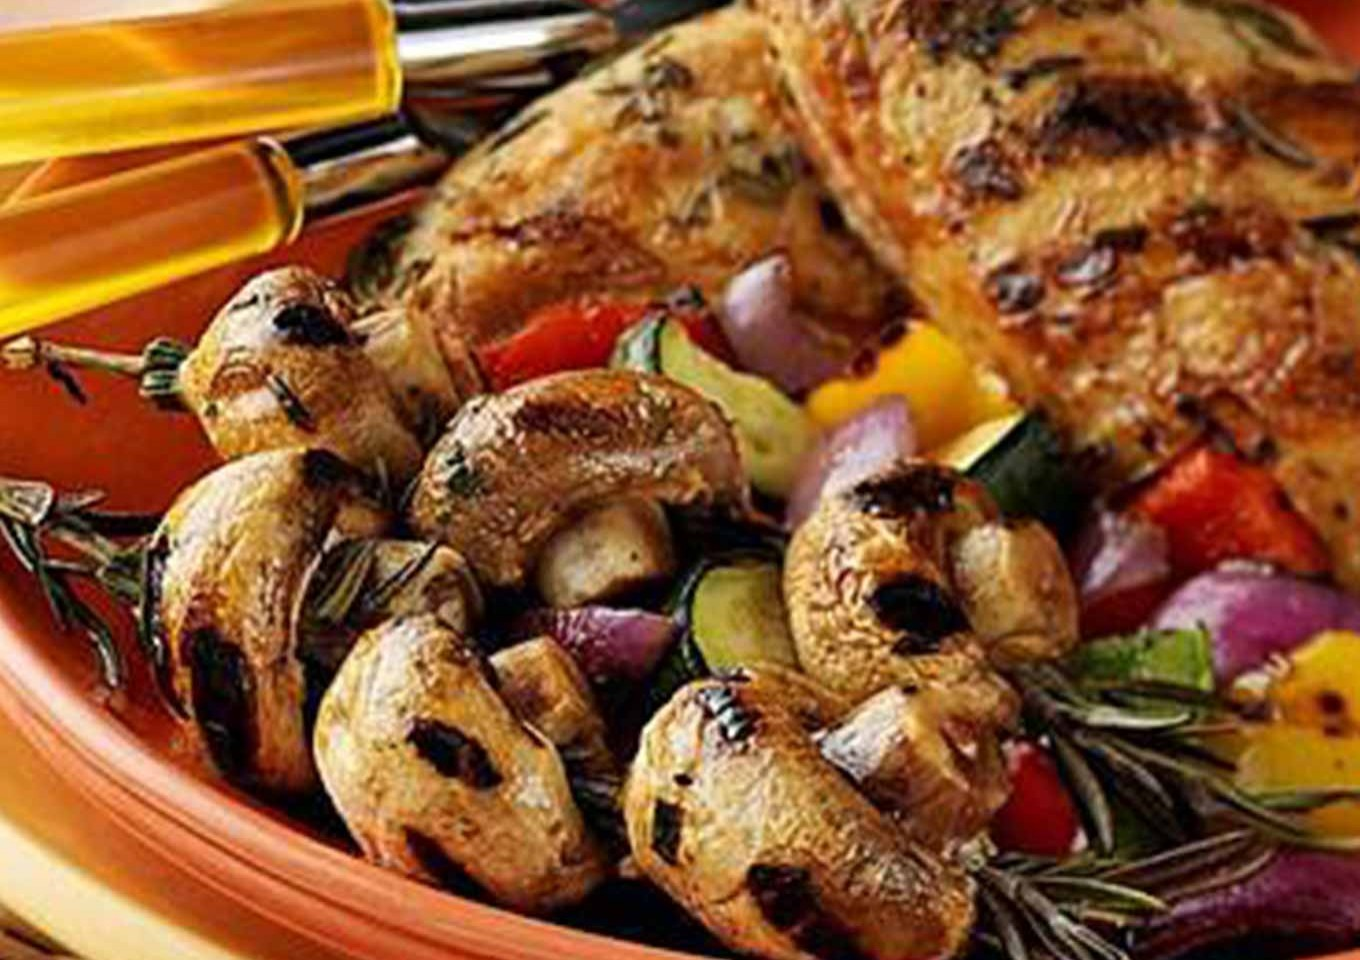 Chicken with Rosemary Mushroom skewers and mixed vegetables